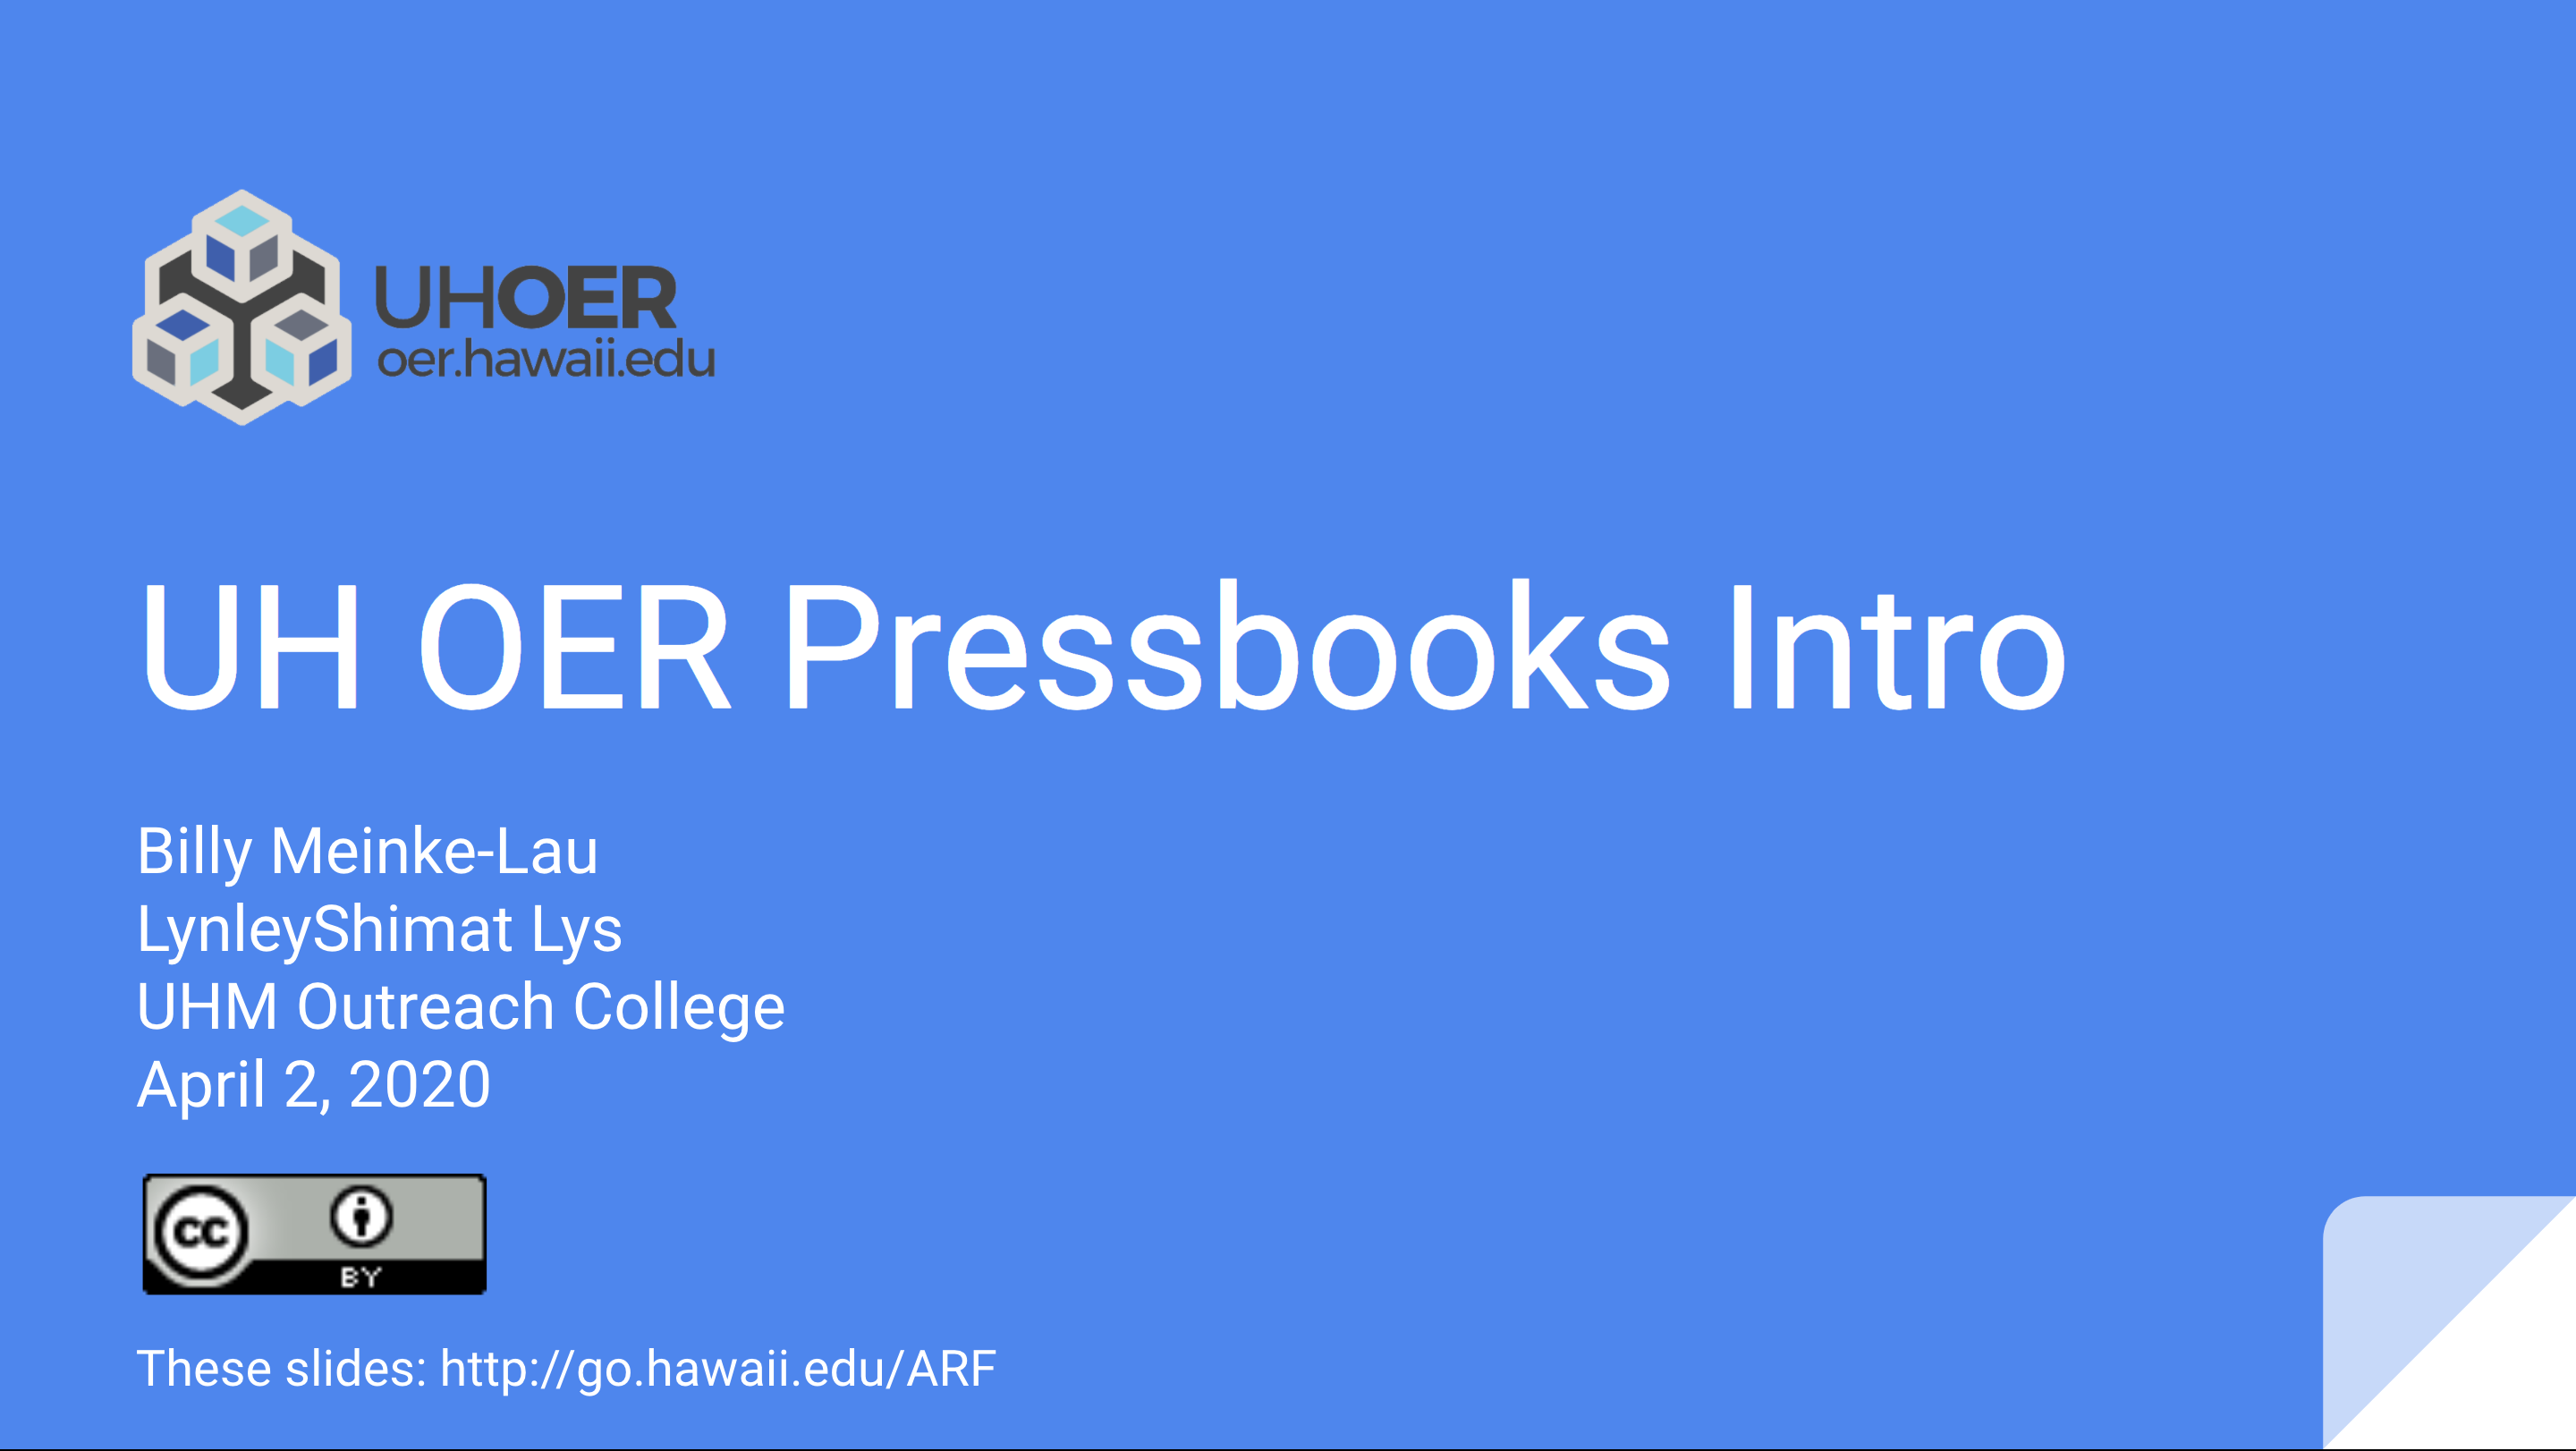 Screenshot of UH OER Pressbooks Intro presentation slides